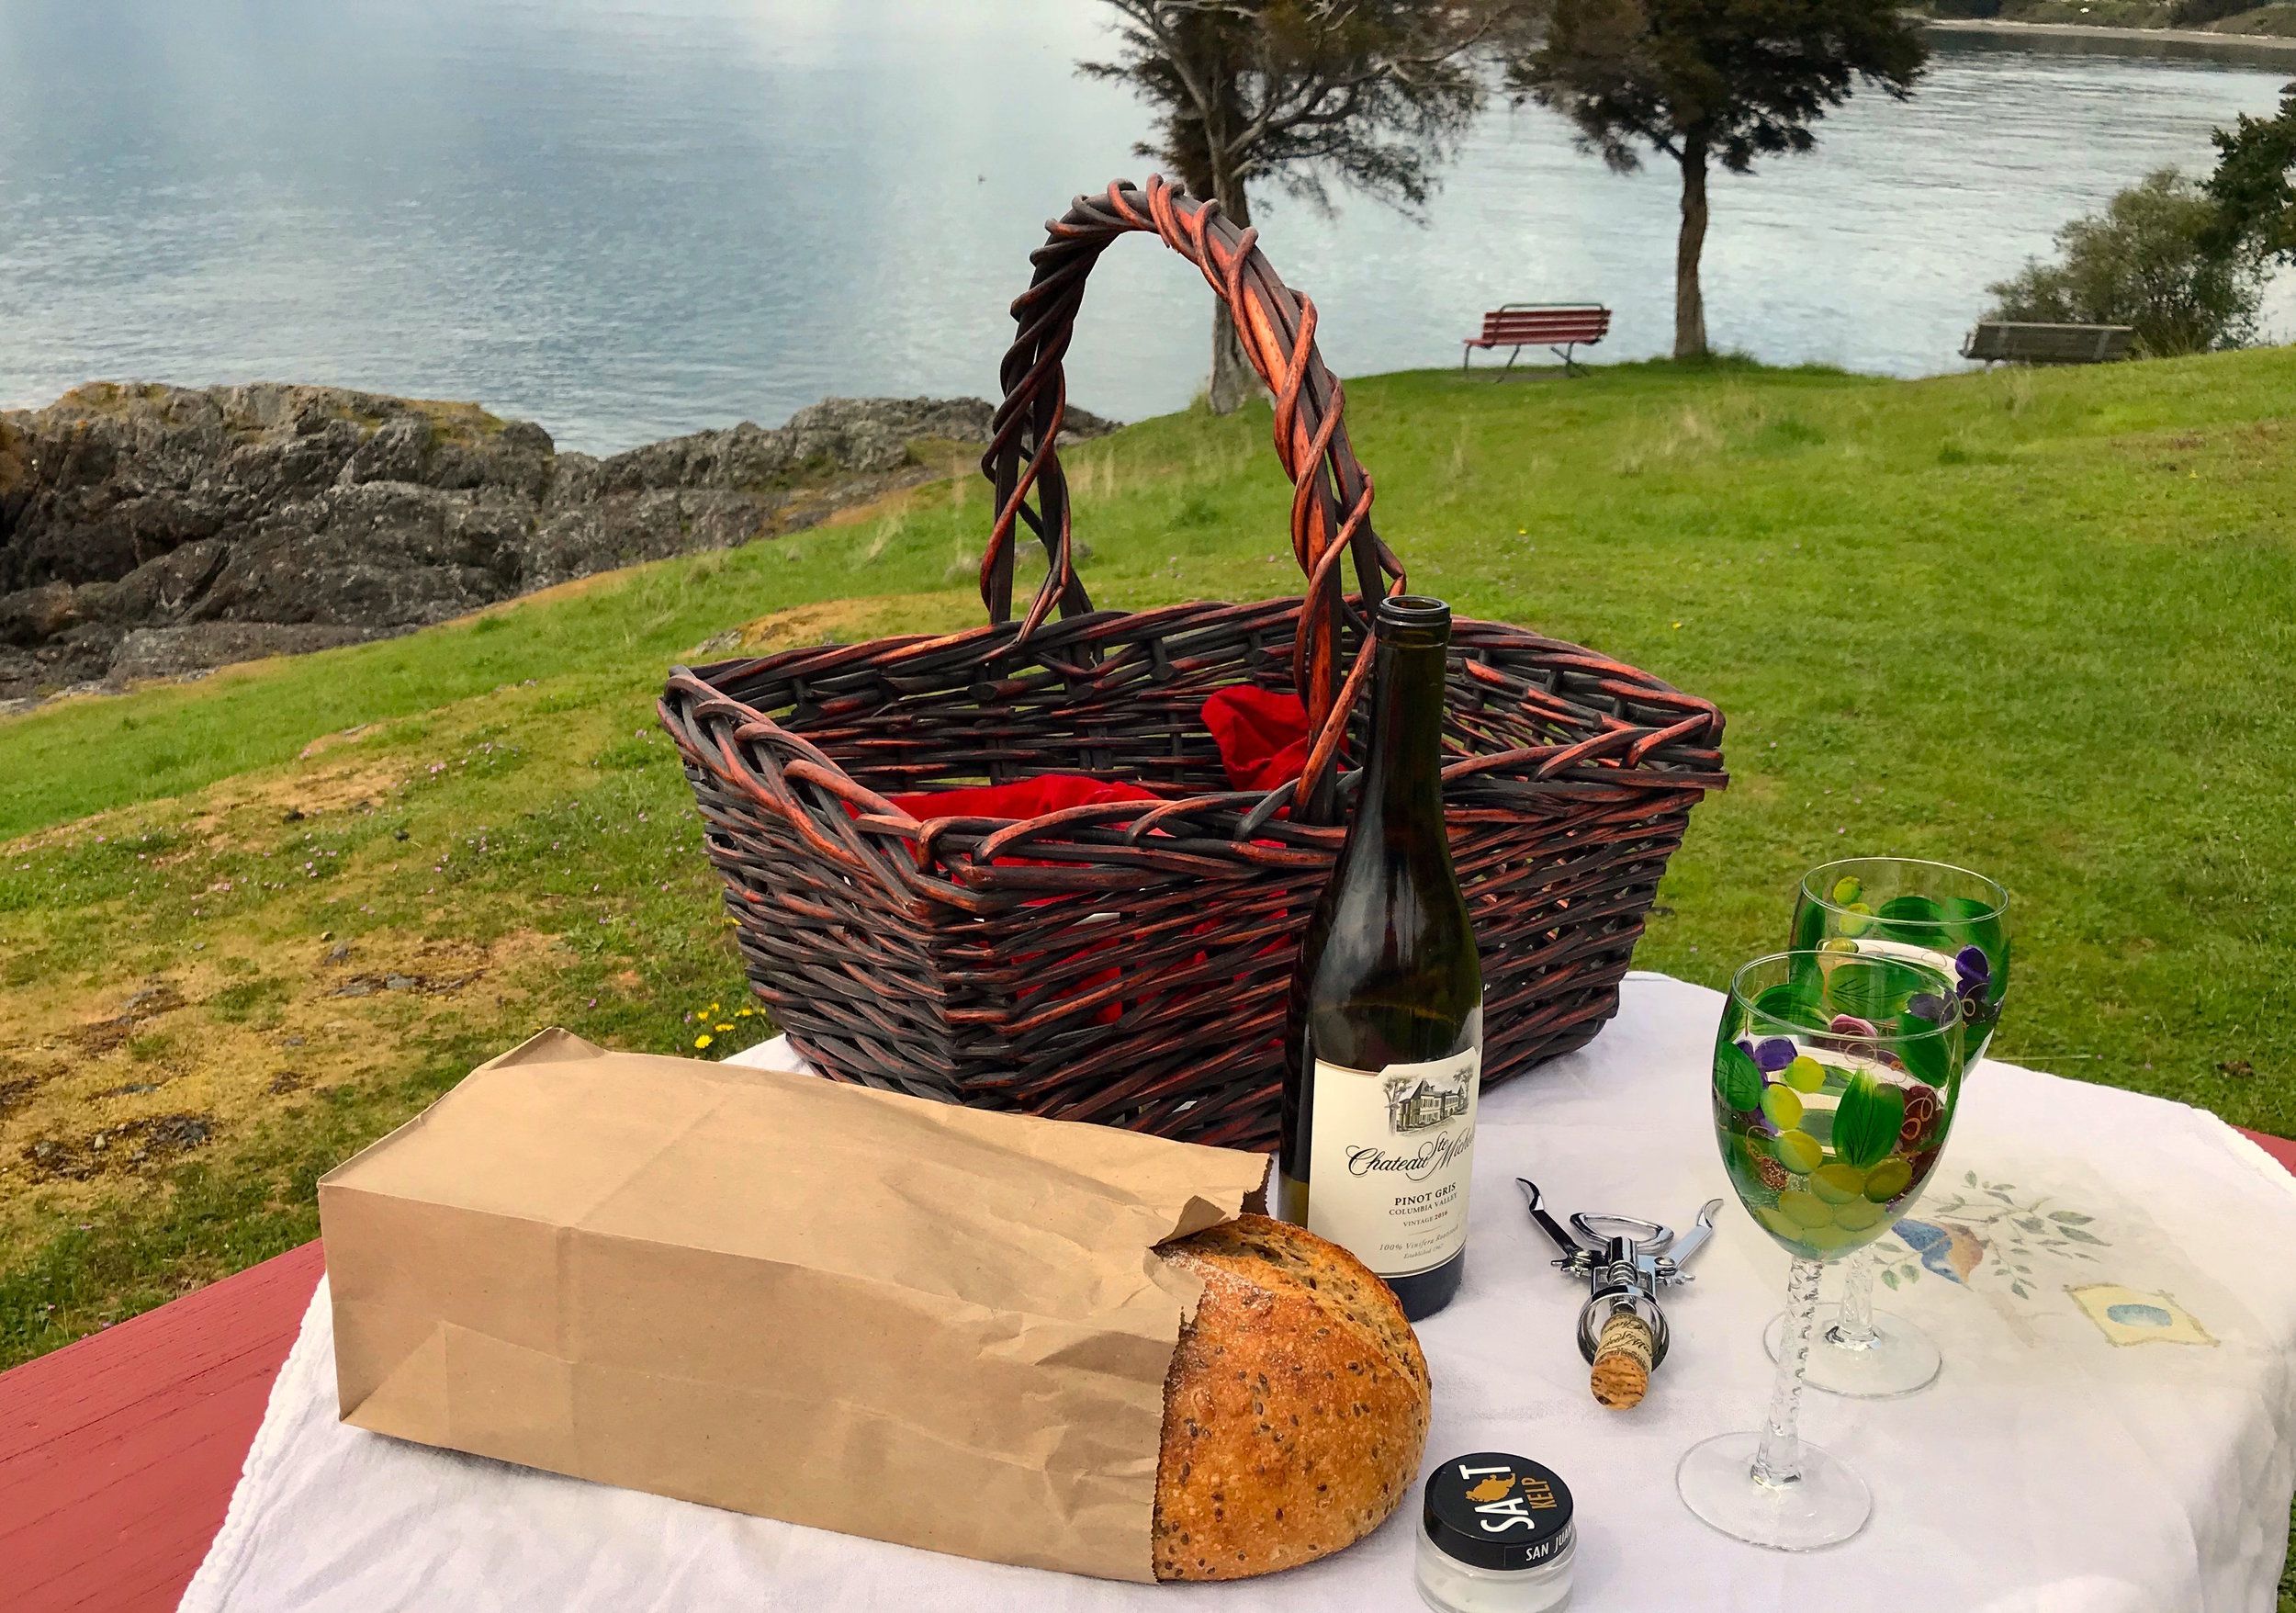 A picnic overlooking the Salish Sea is a lot more fun than going out